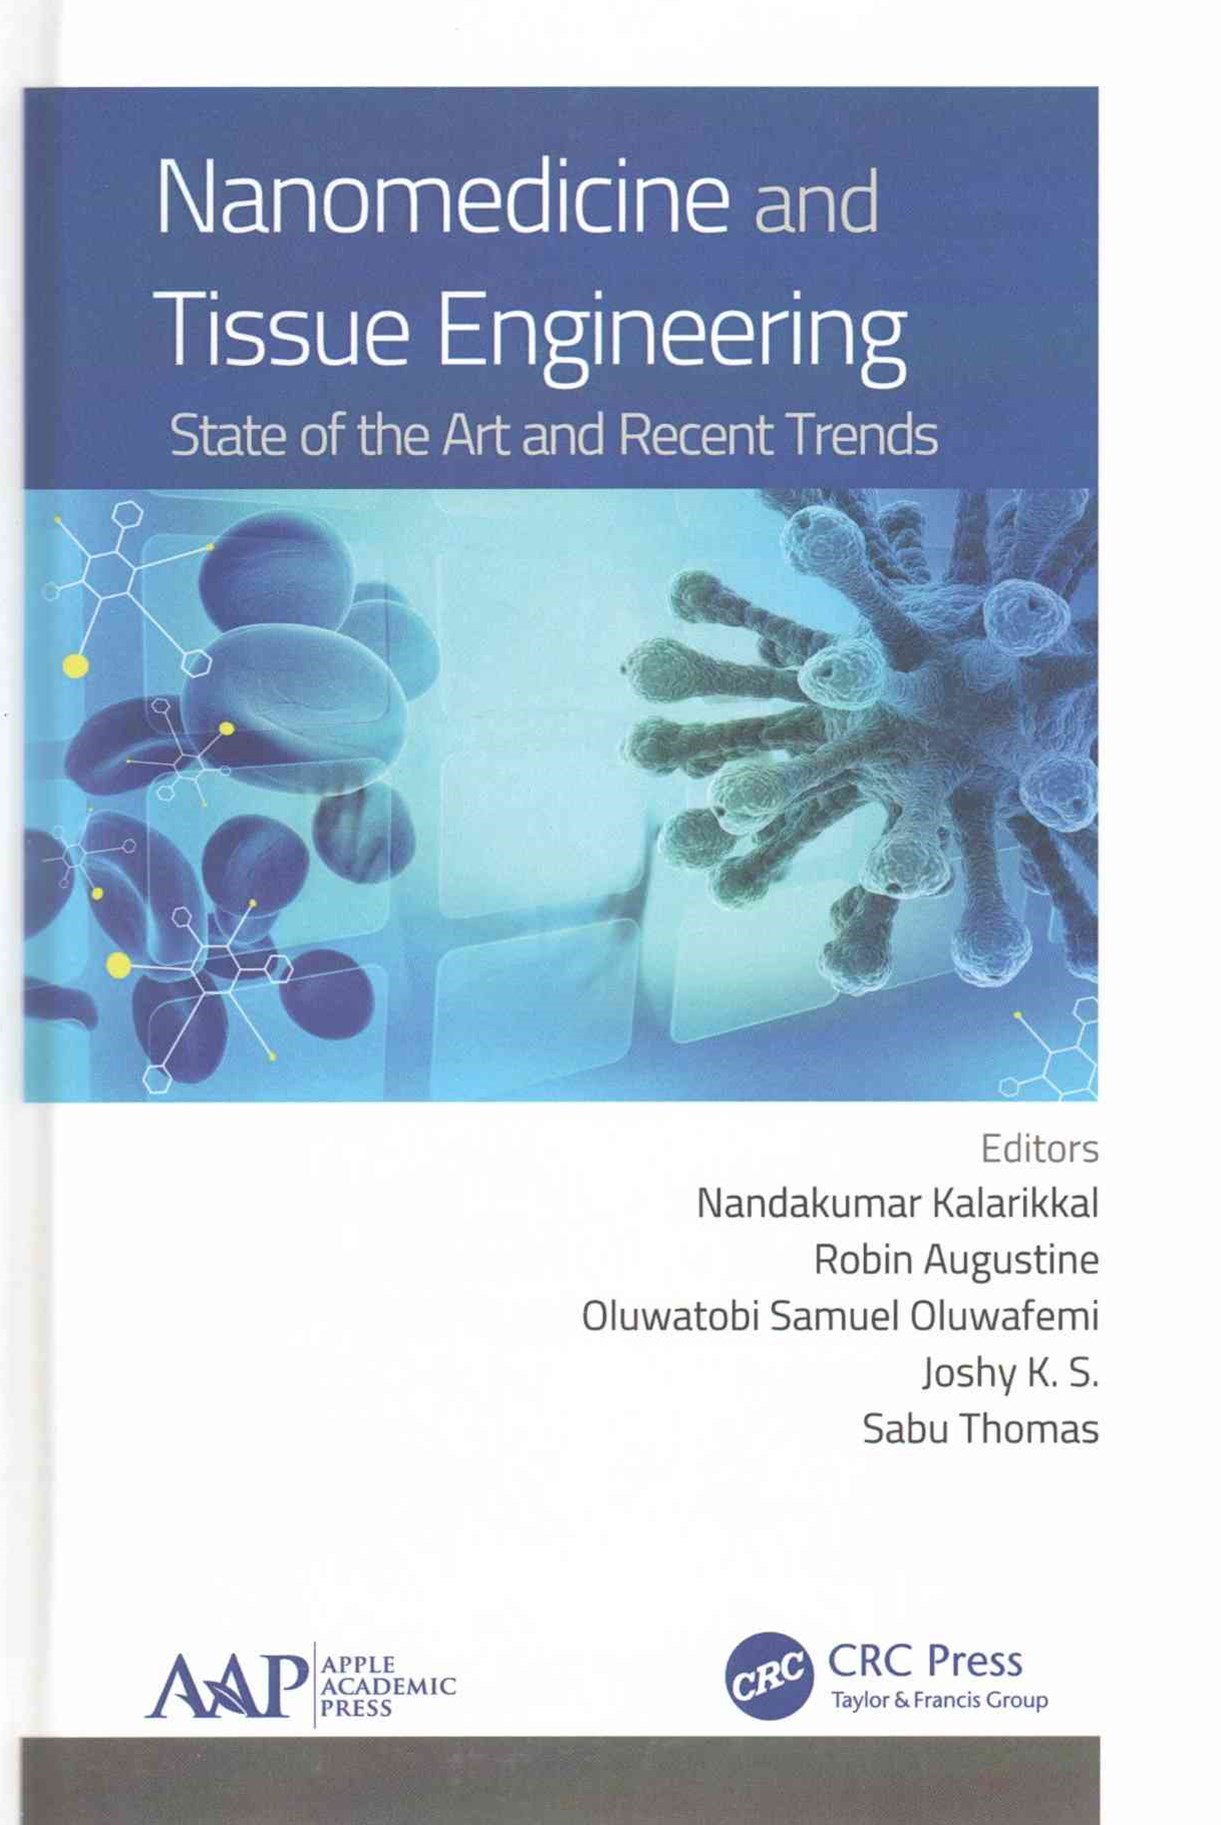 Nanomedicine and Tissue Engineering